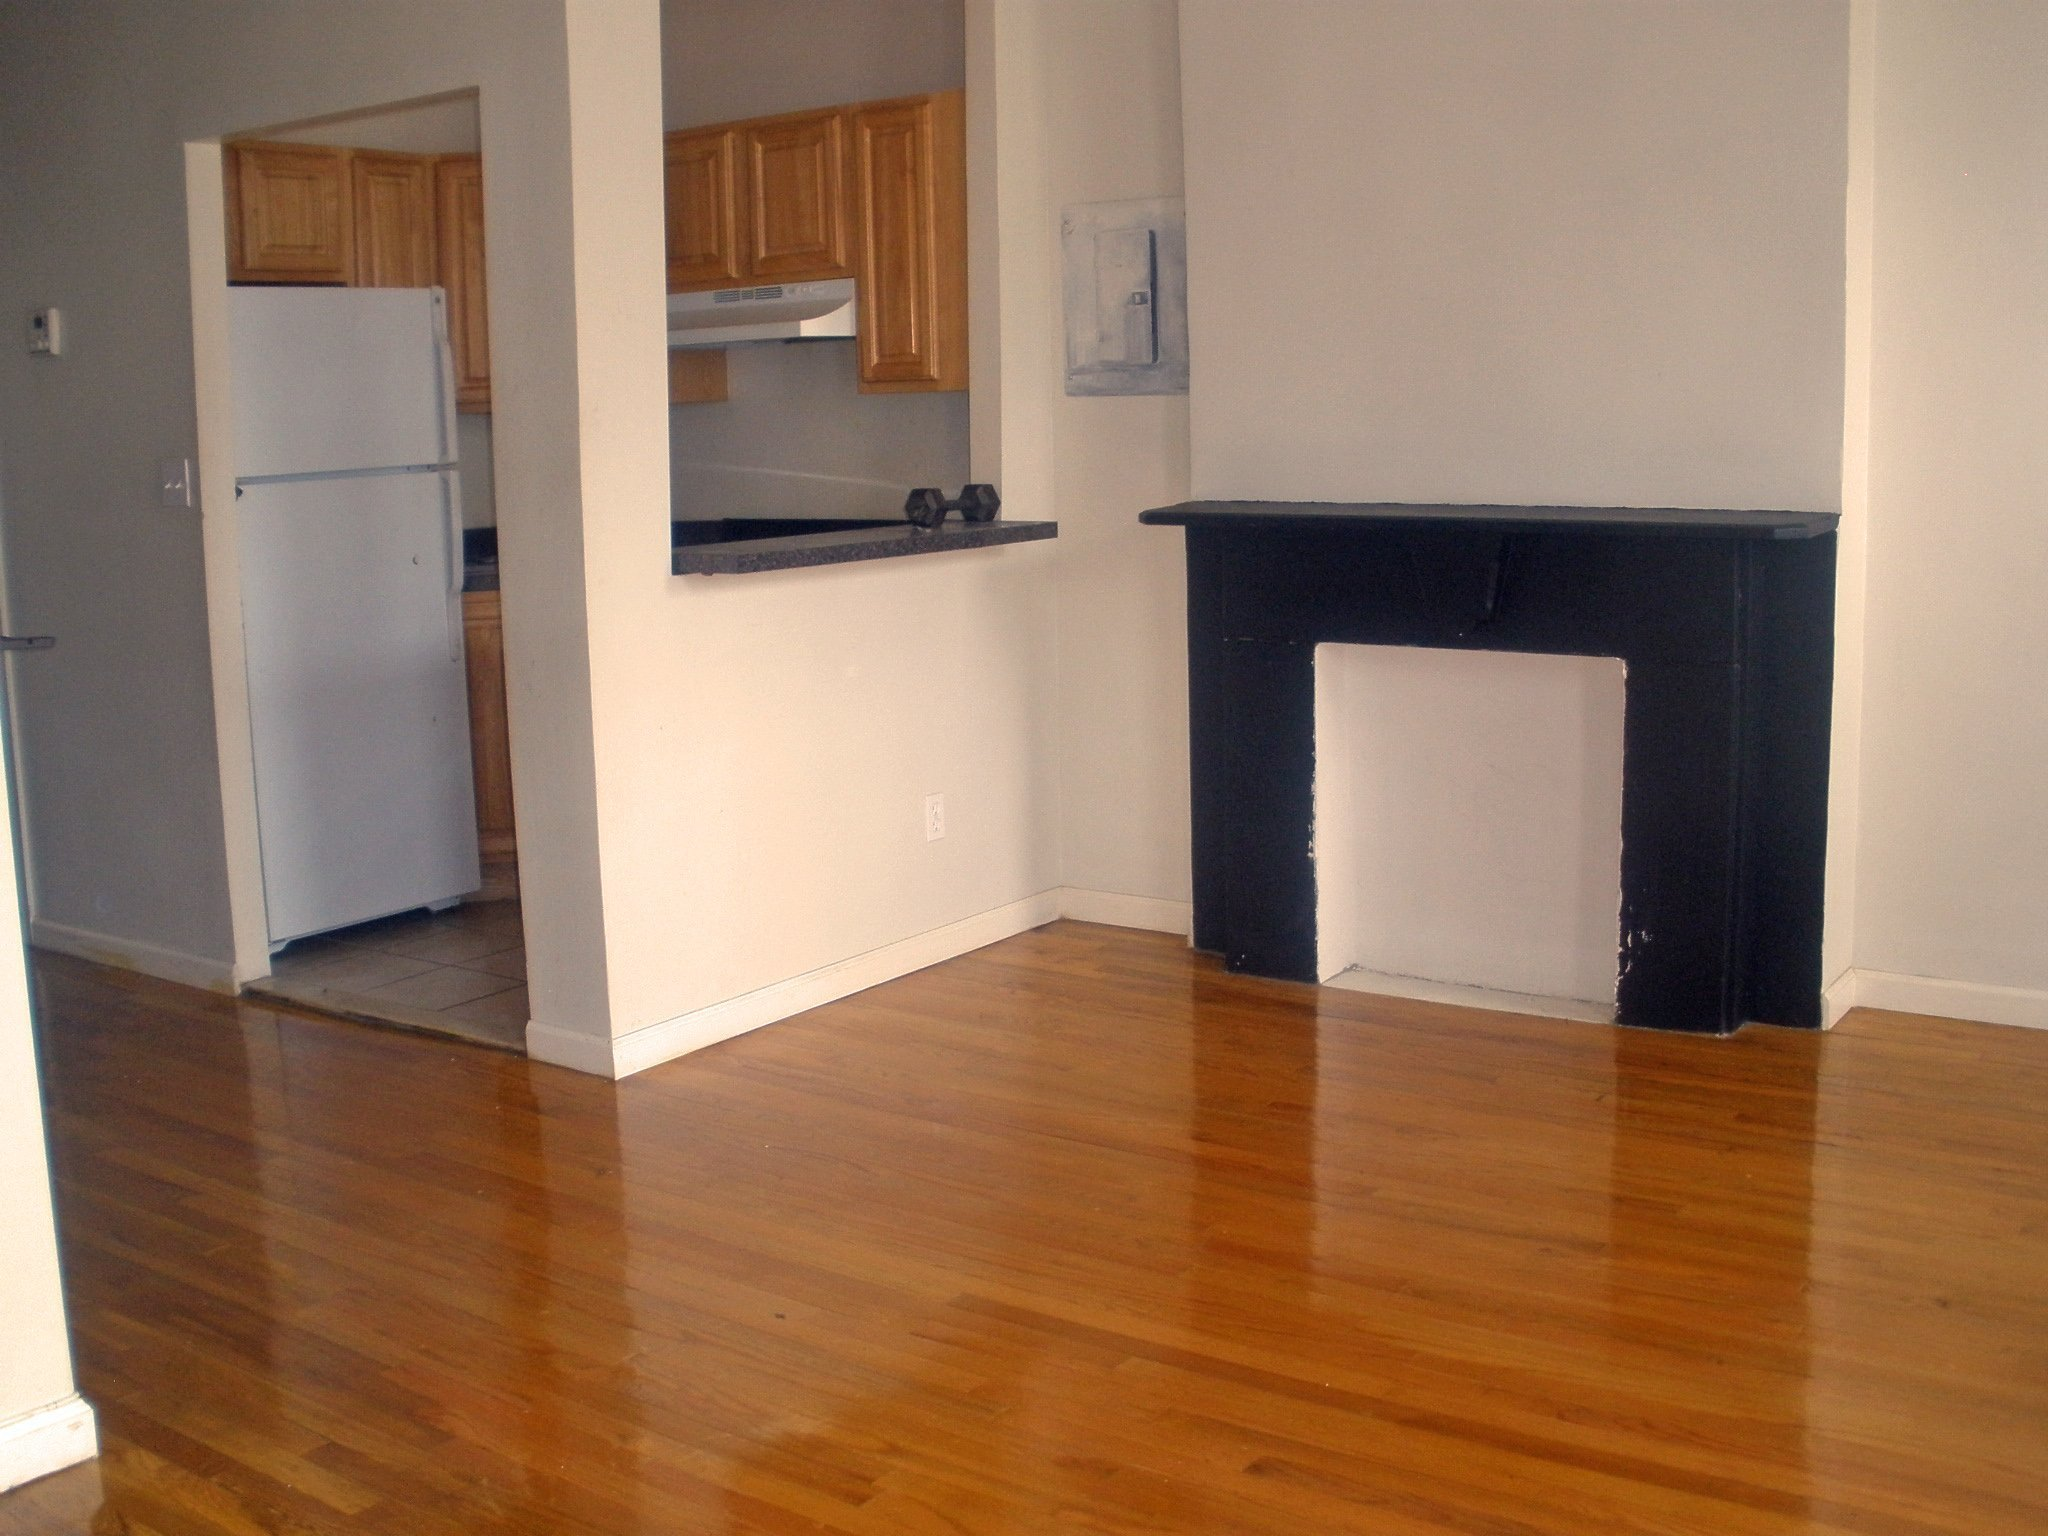 Best Bedford Stuyvesant 2 Bedroom Apartment For Rent Brooklyn With Pictures